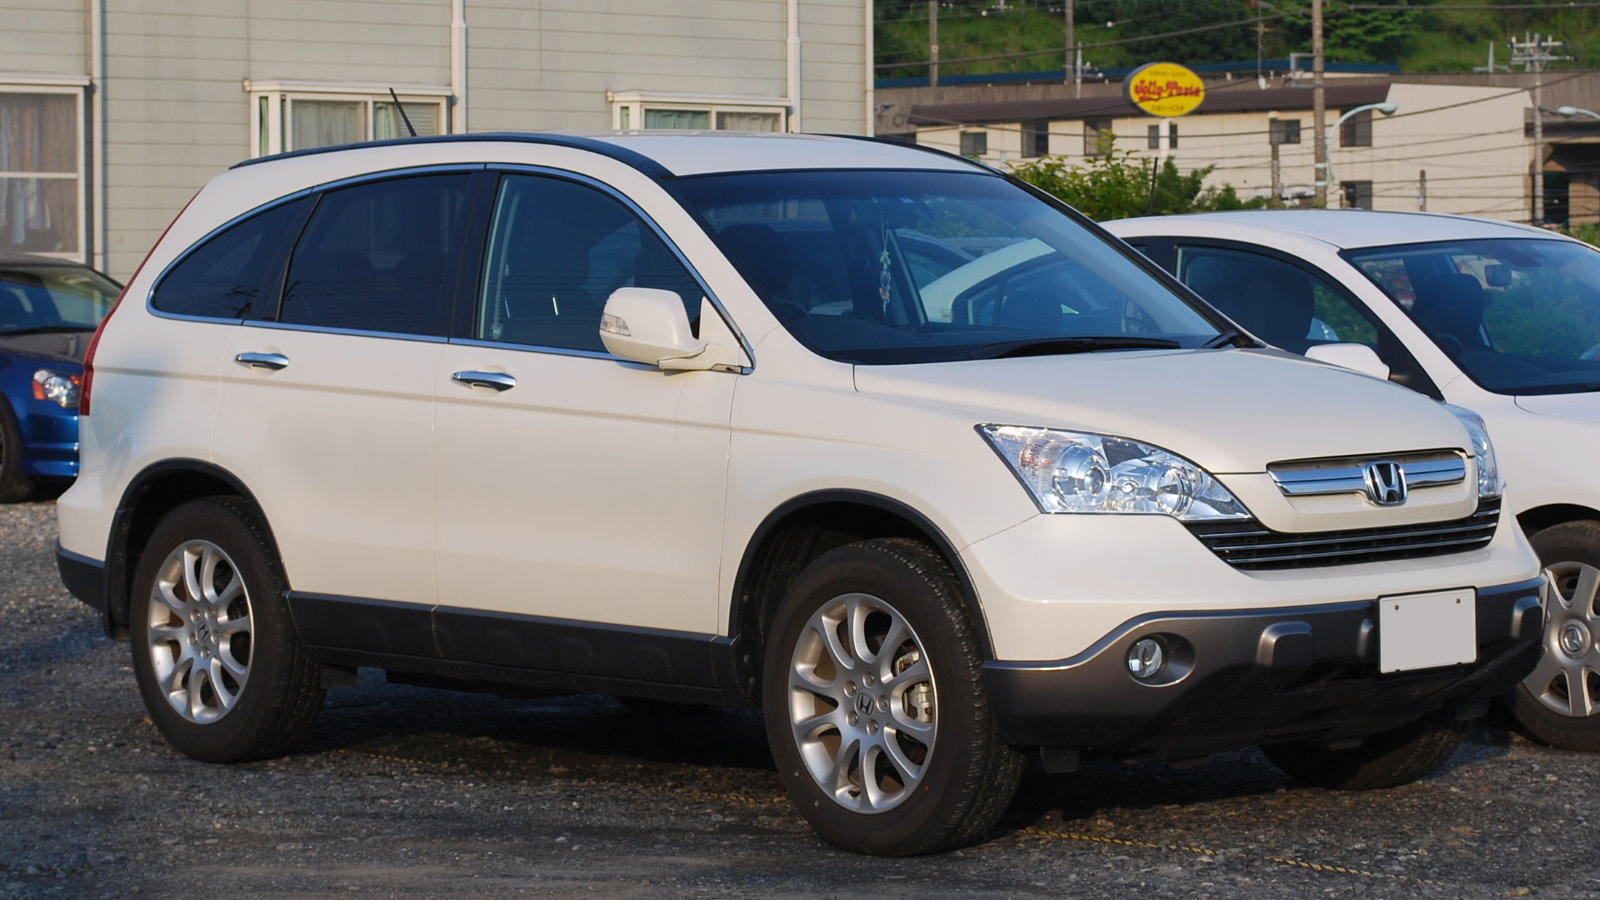 honda cr-v (third generation)